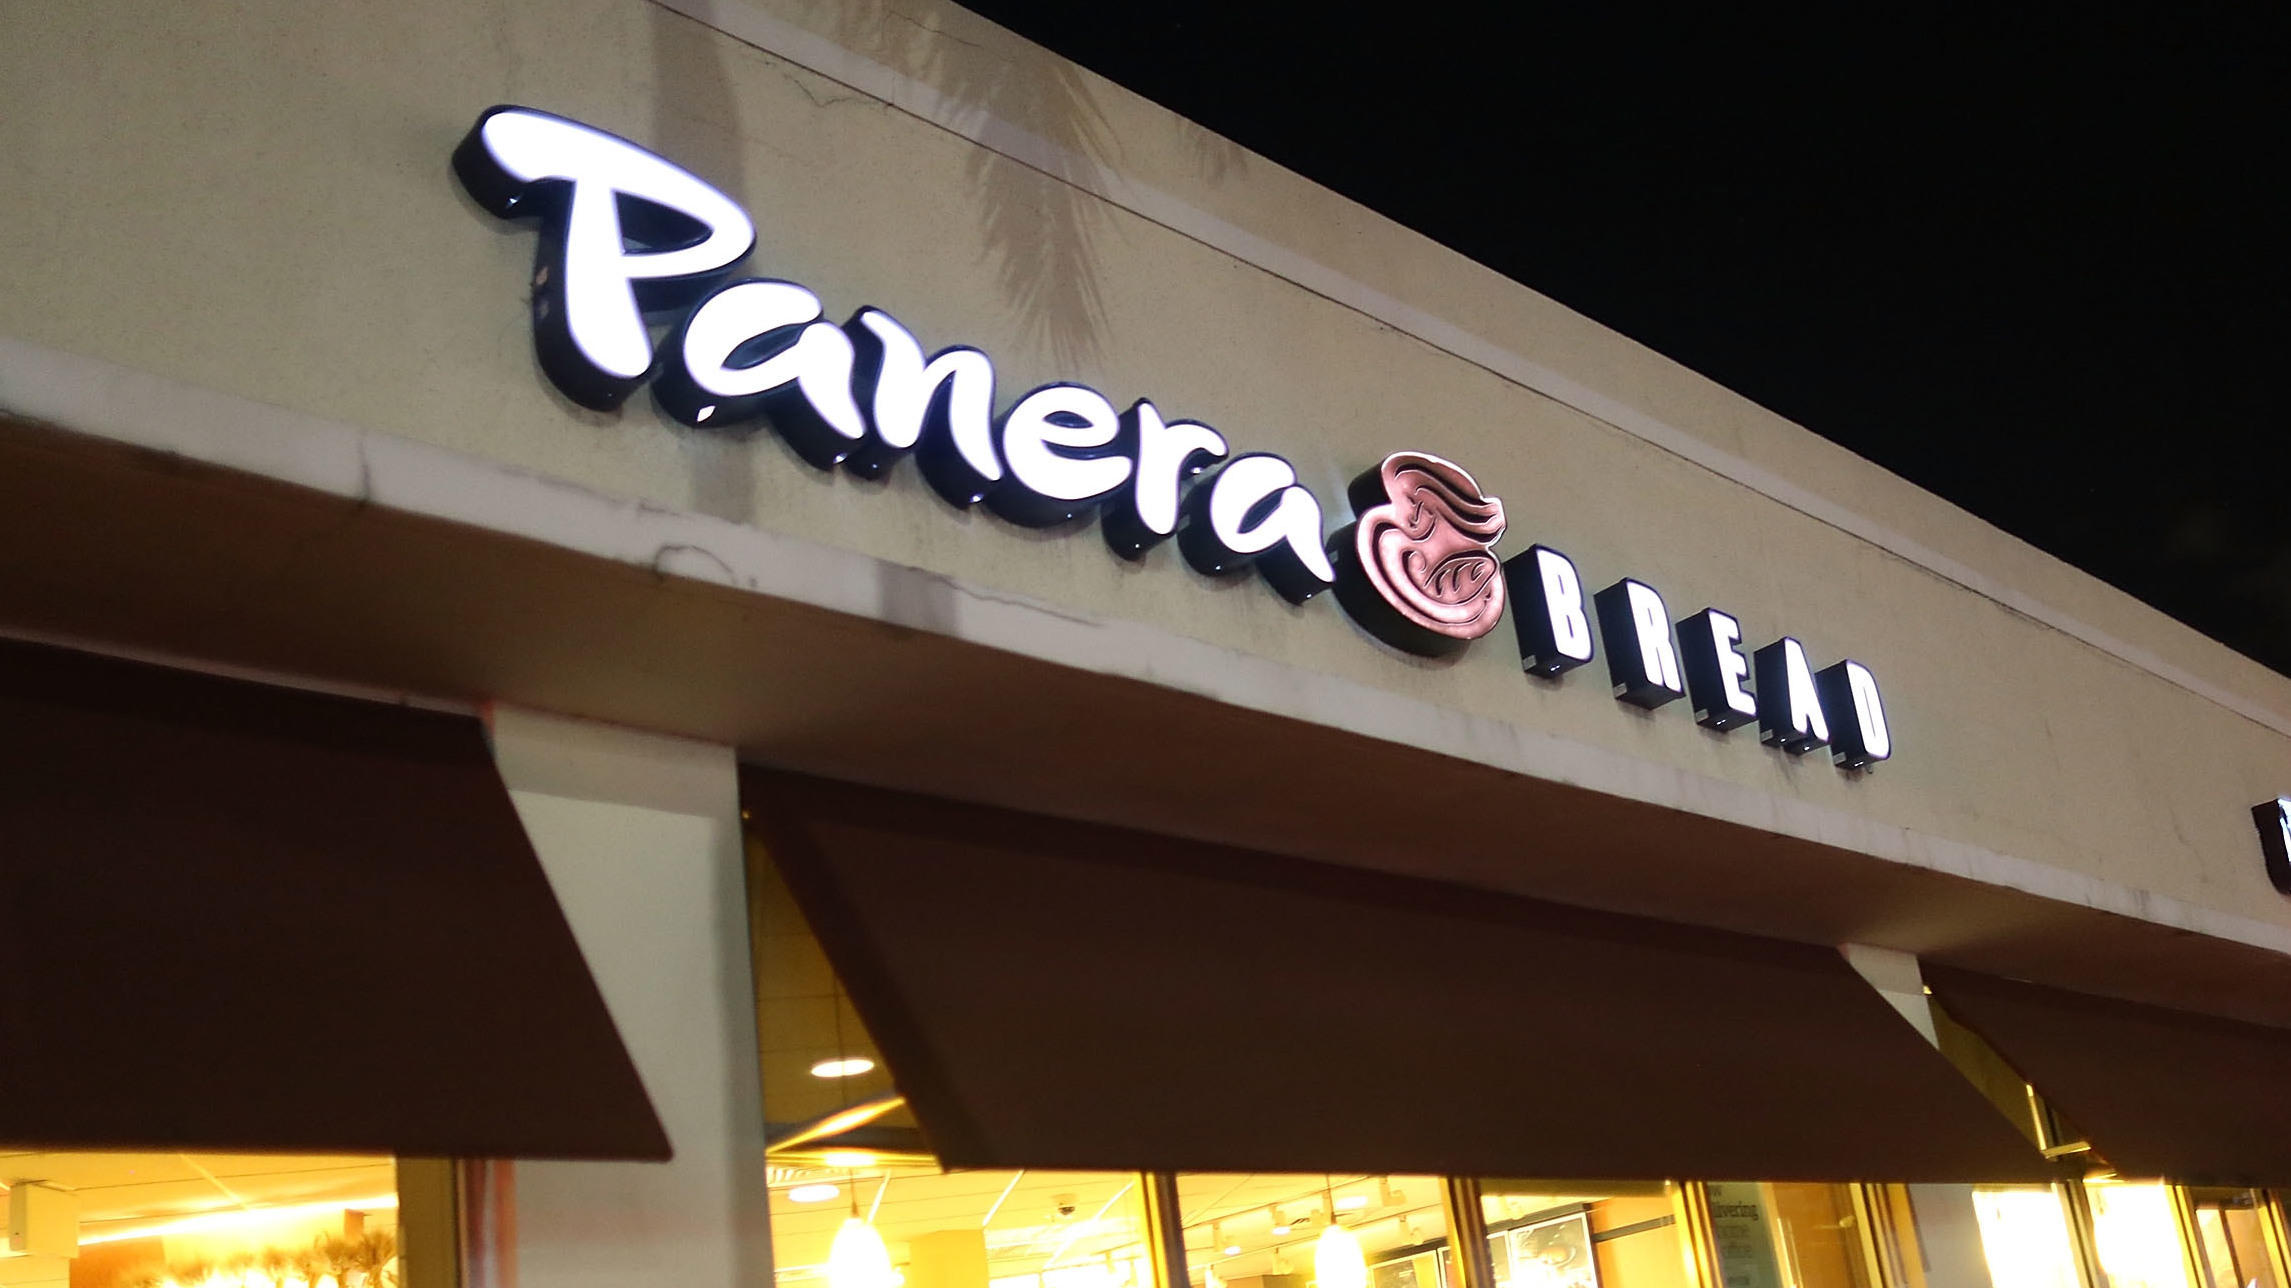 Panera website exposed customer data, report says